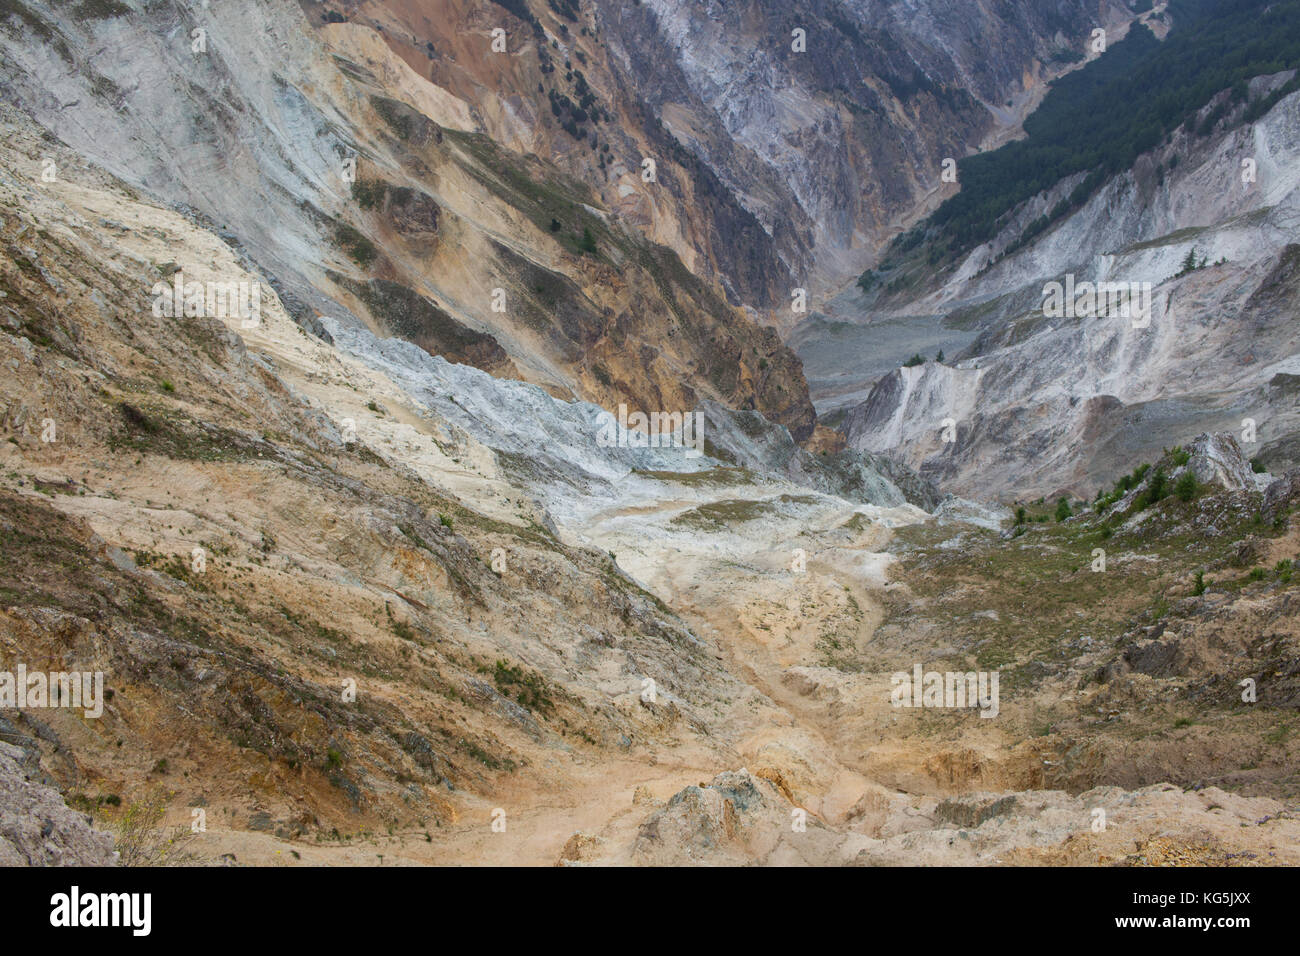 """The """"Illgraben"""" is a deep valley which is cut by debris flow through lots of rocks and mud carried with heavy rain - Stock Image"""